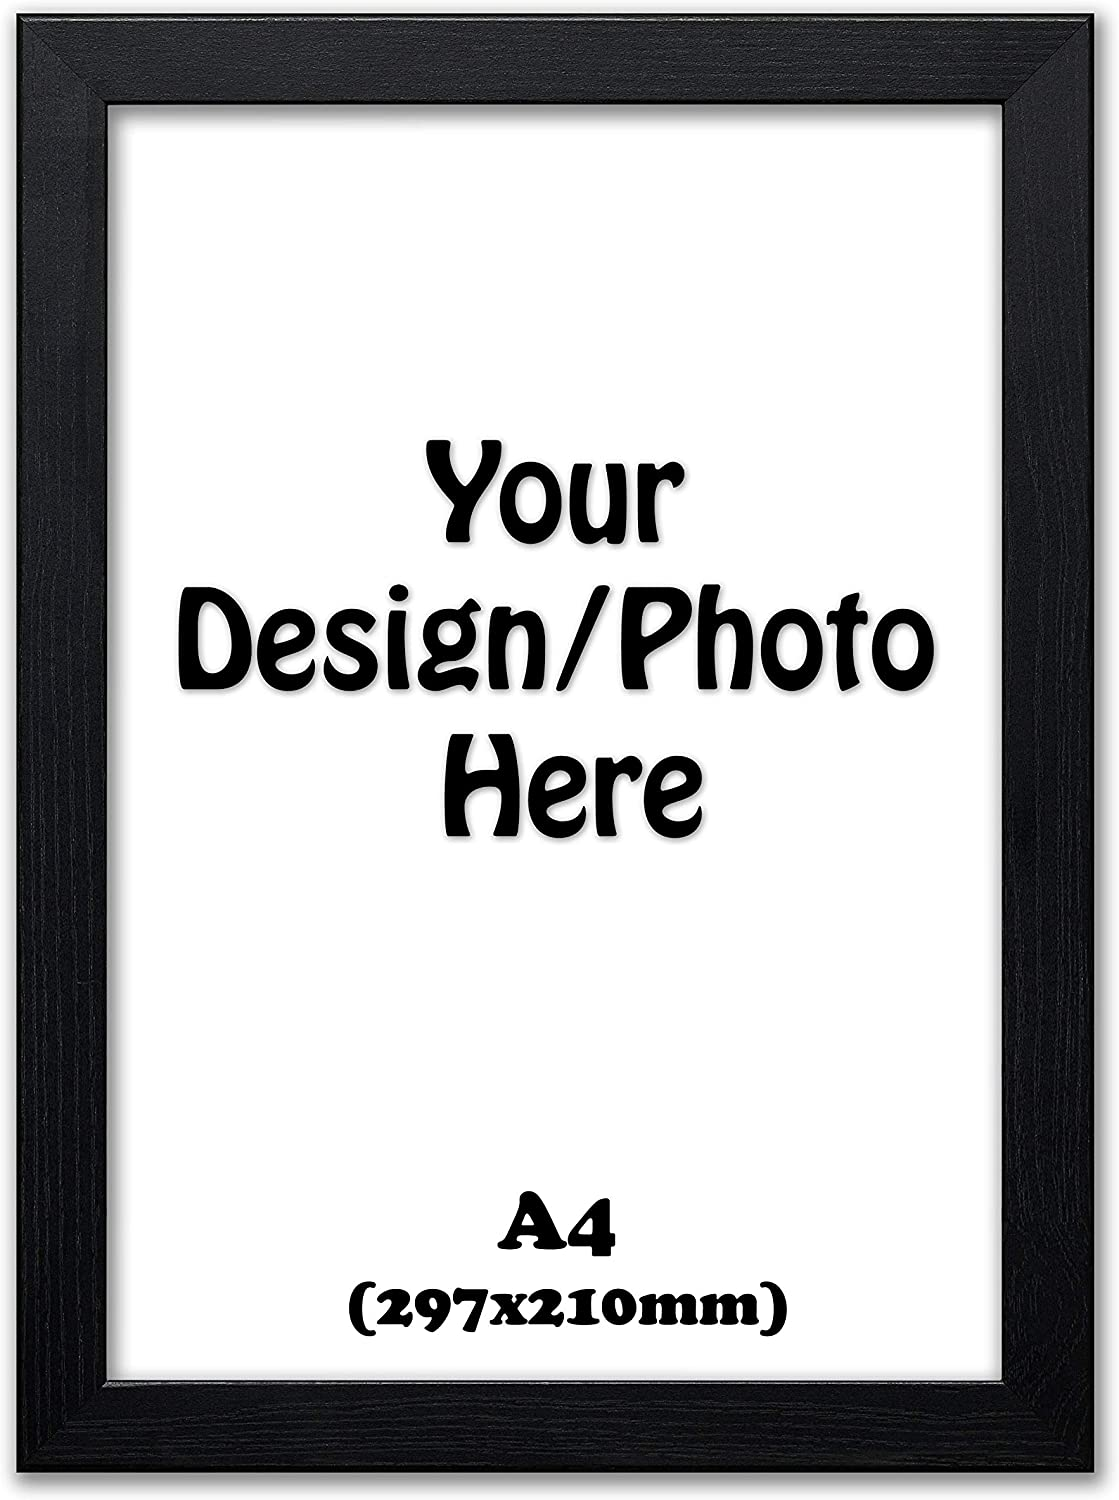 Wooden Picture Frame Photo Poster Wall Decor Collage Hanging Frames A1 A2 A3 A4 A1-840x594mm